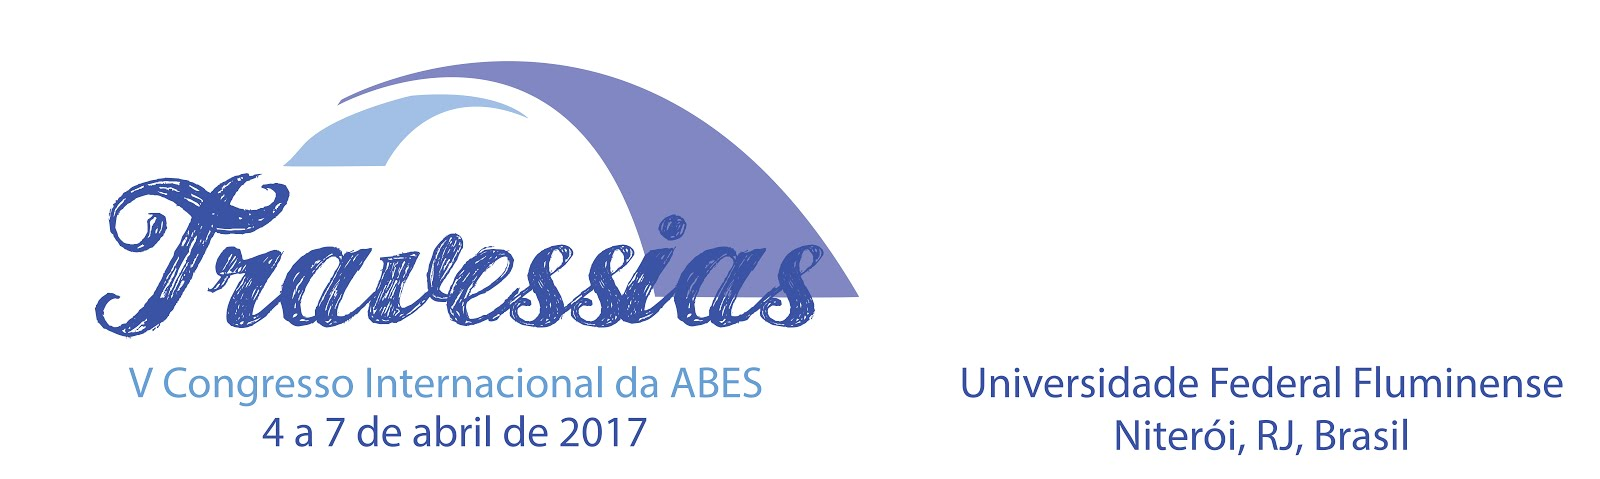 Travessias - V Congresso Internacional da Abes